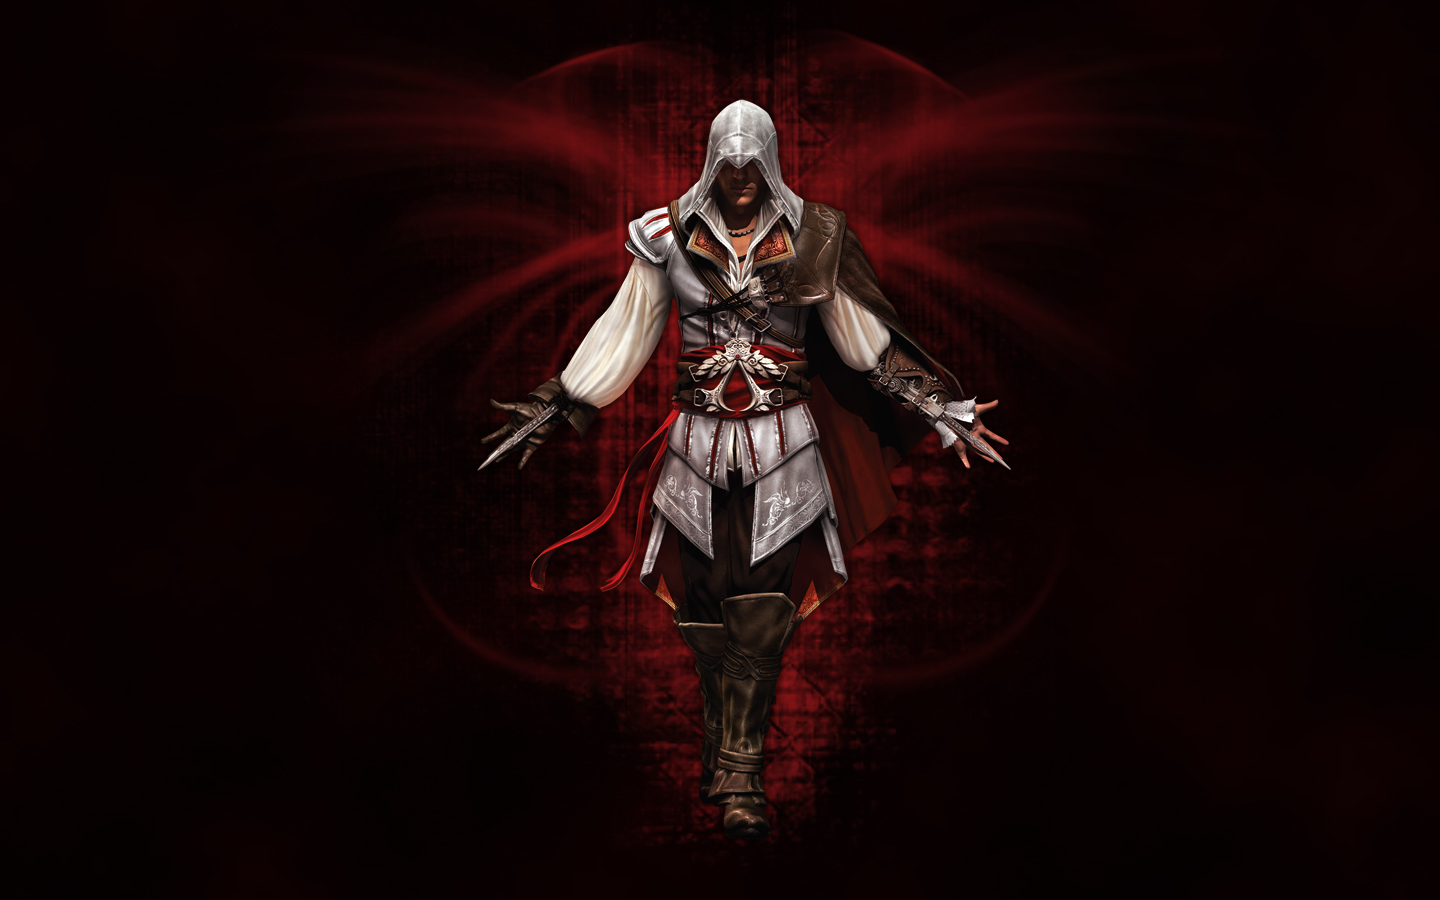 Assassins Creed Brotherhood HD Wallpaper The Wallpaper 1440x900